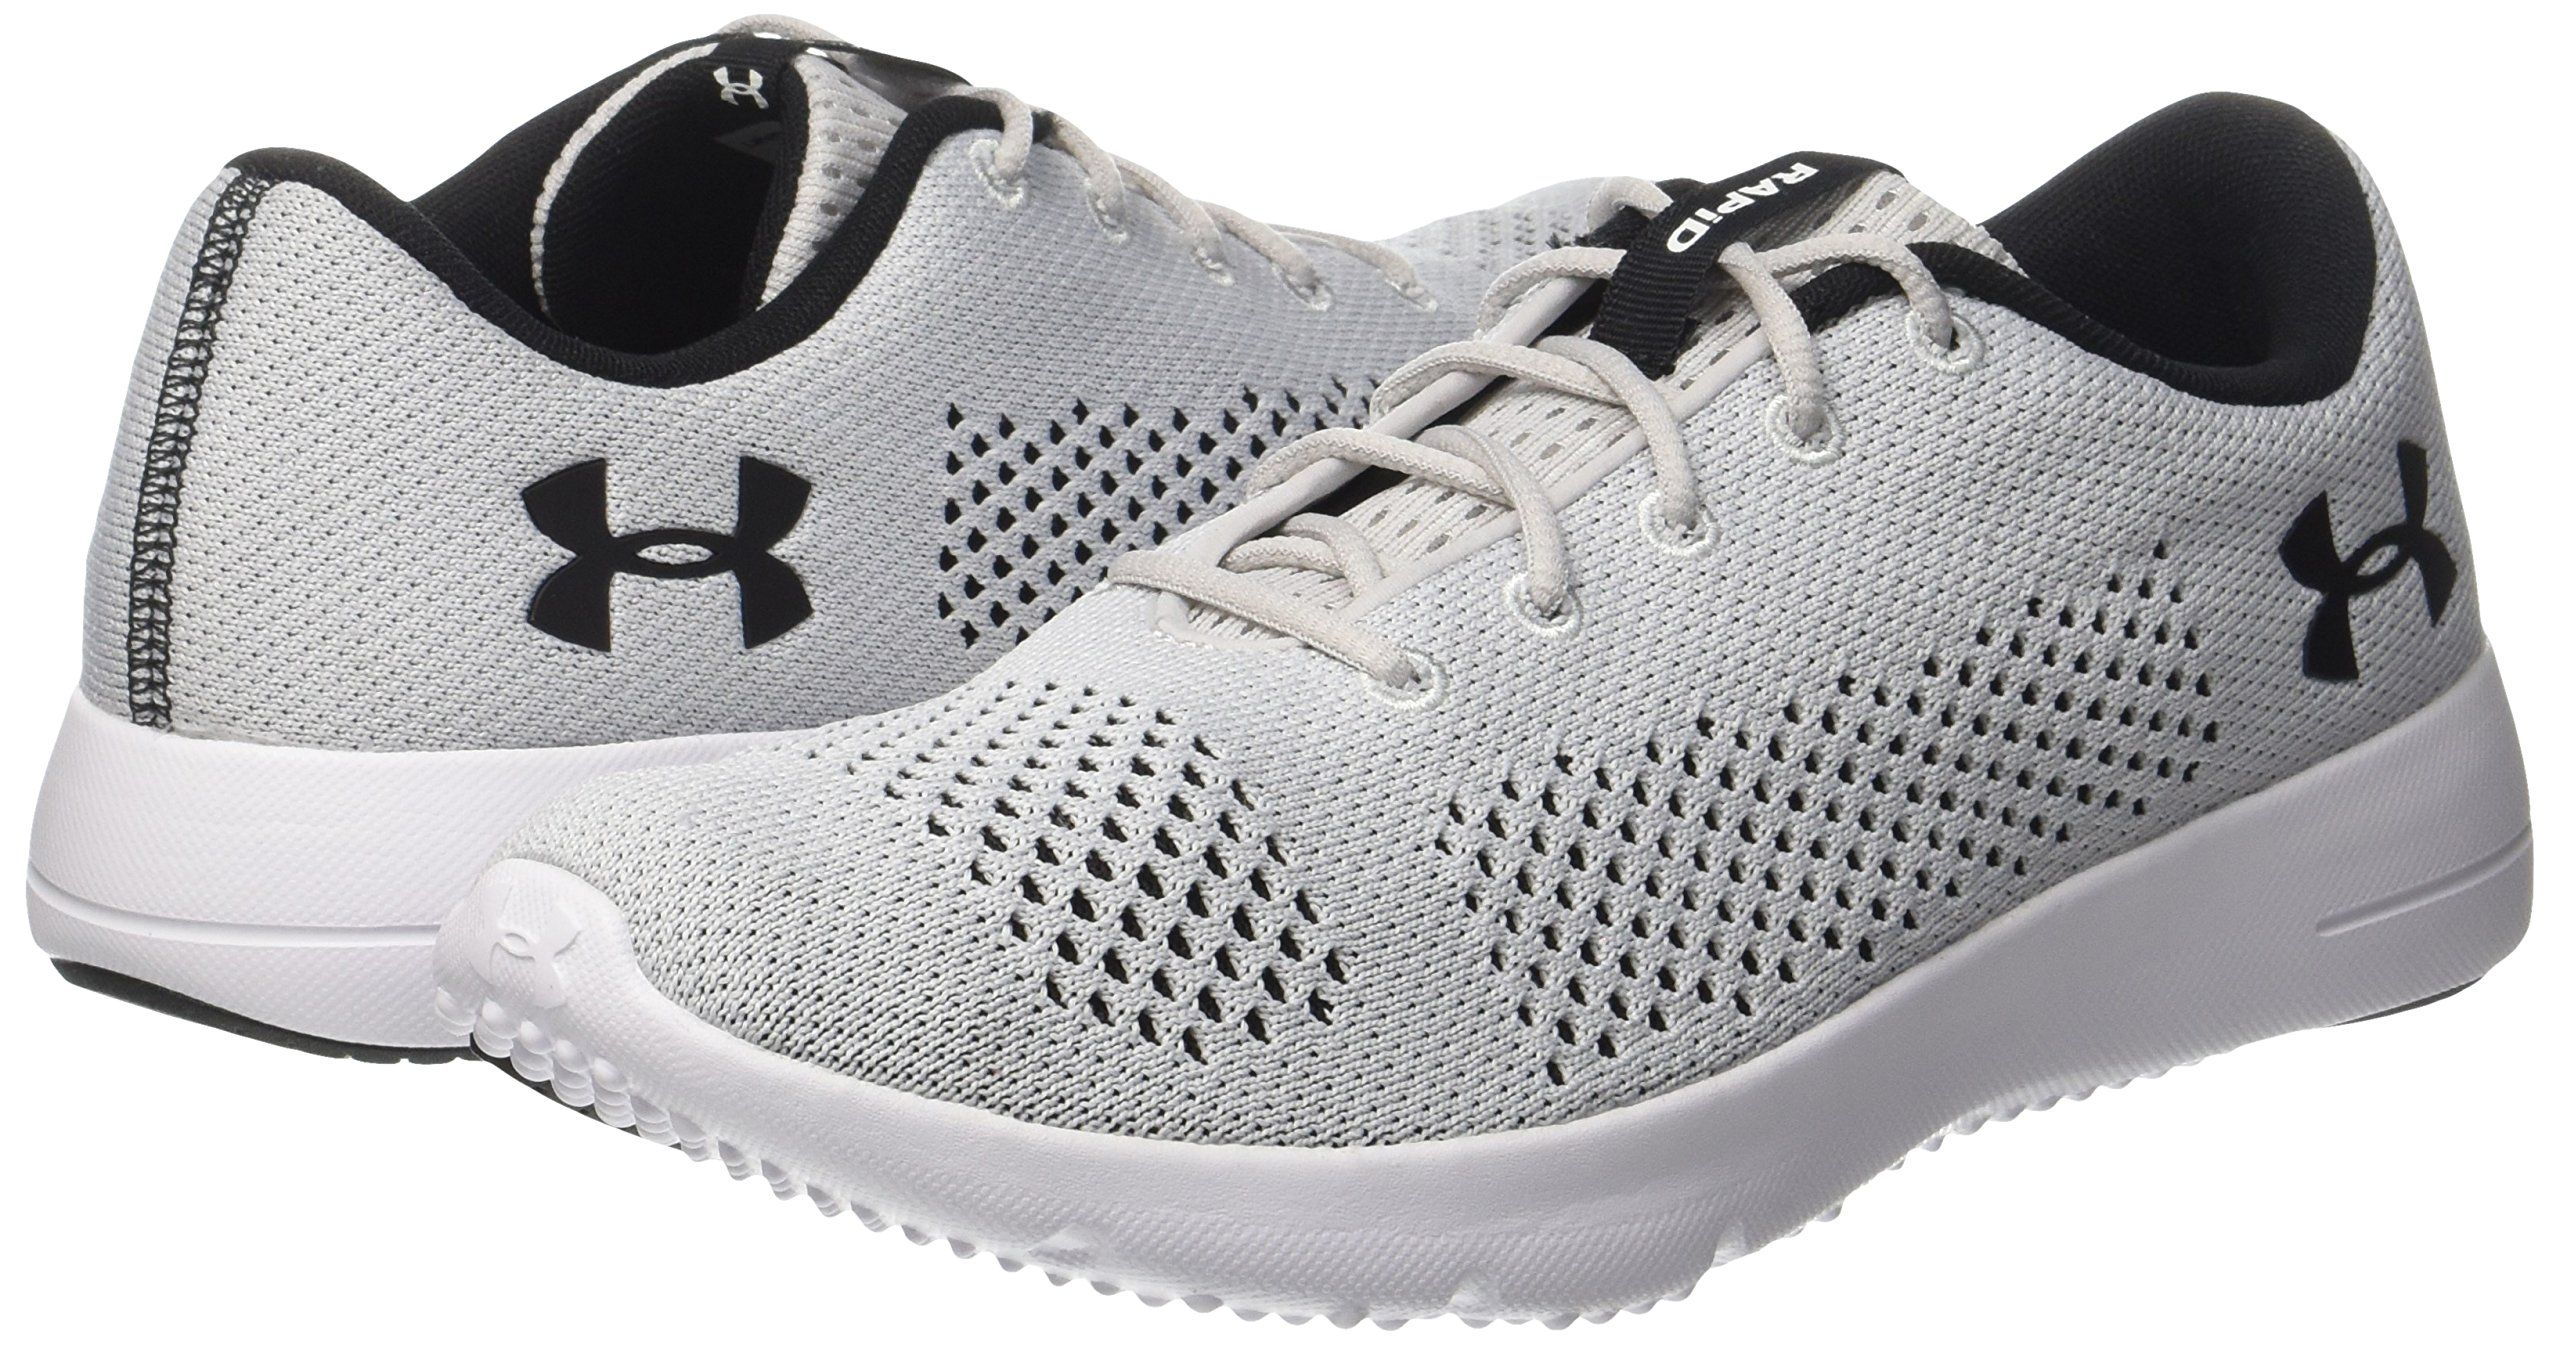 Under Armour Rapid Running Shoes AW179